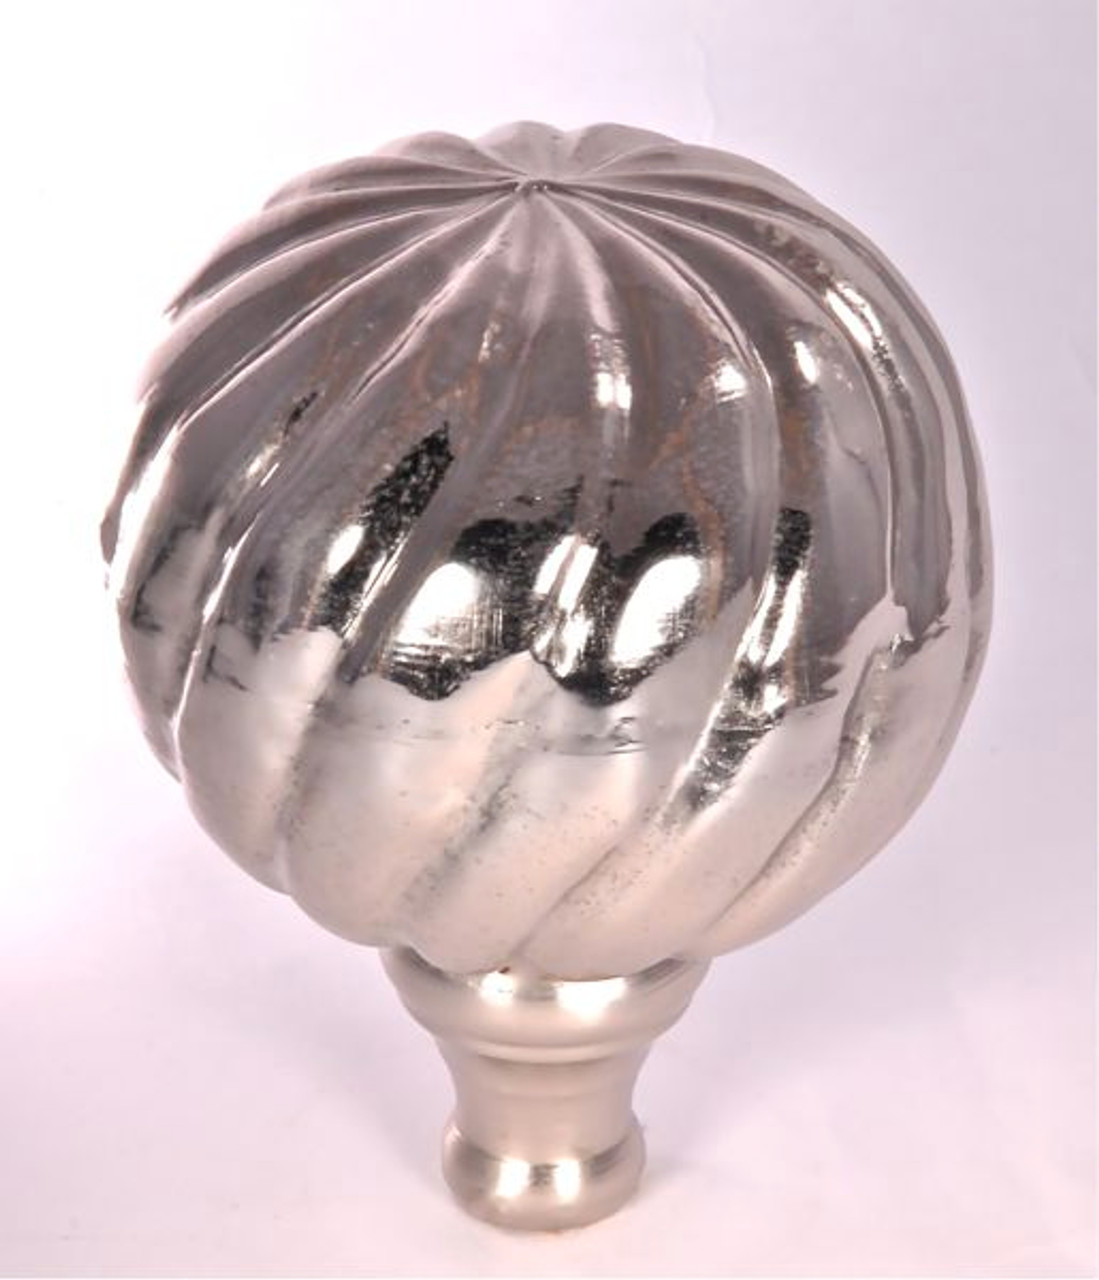 Finial - Small Parisian- Nickel Polished